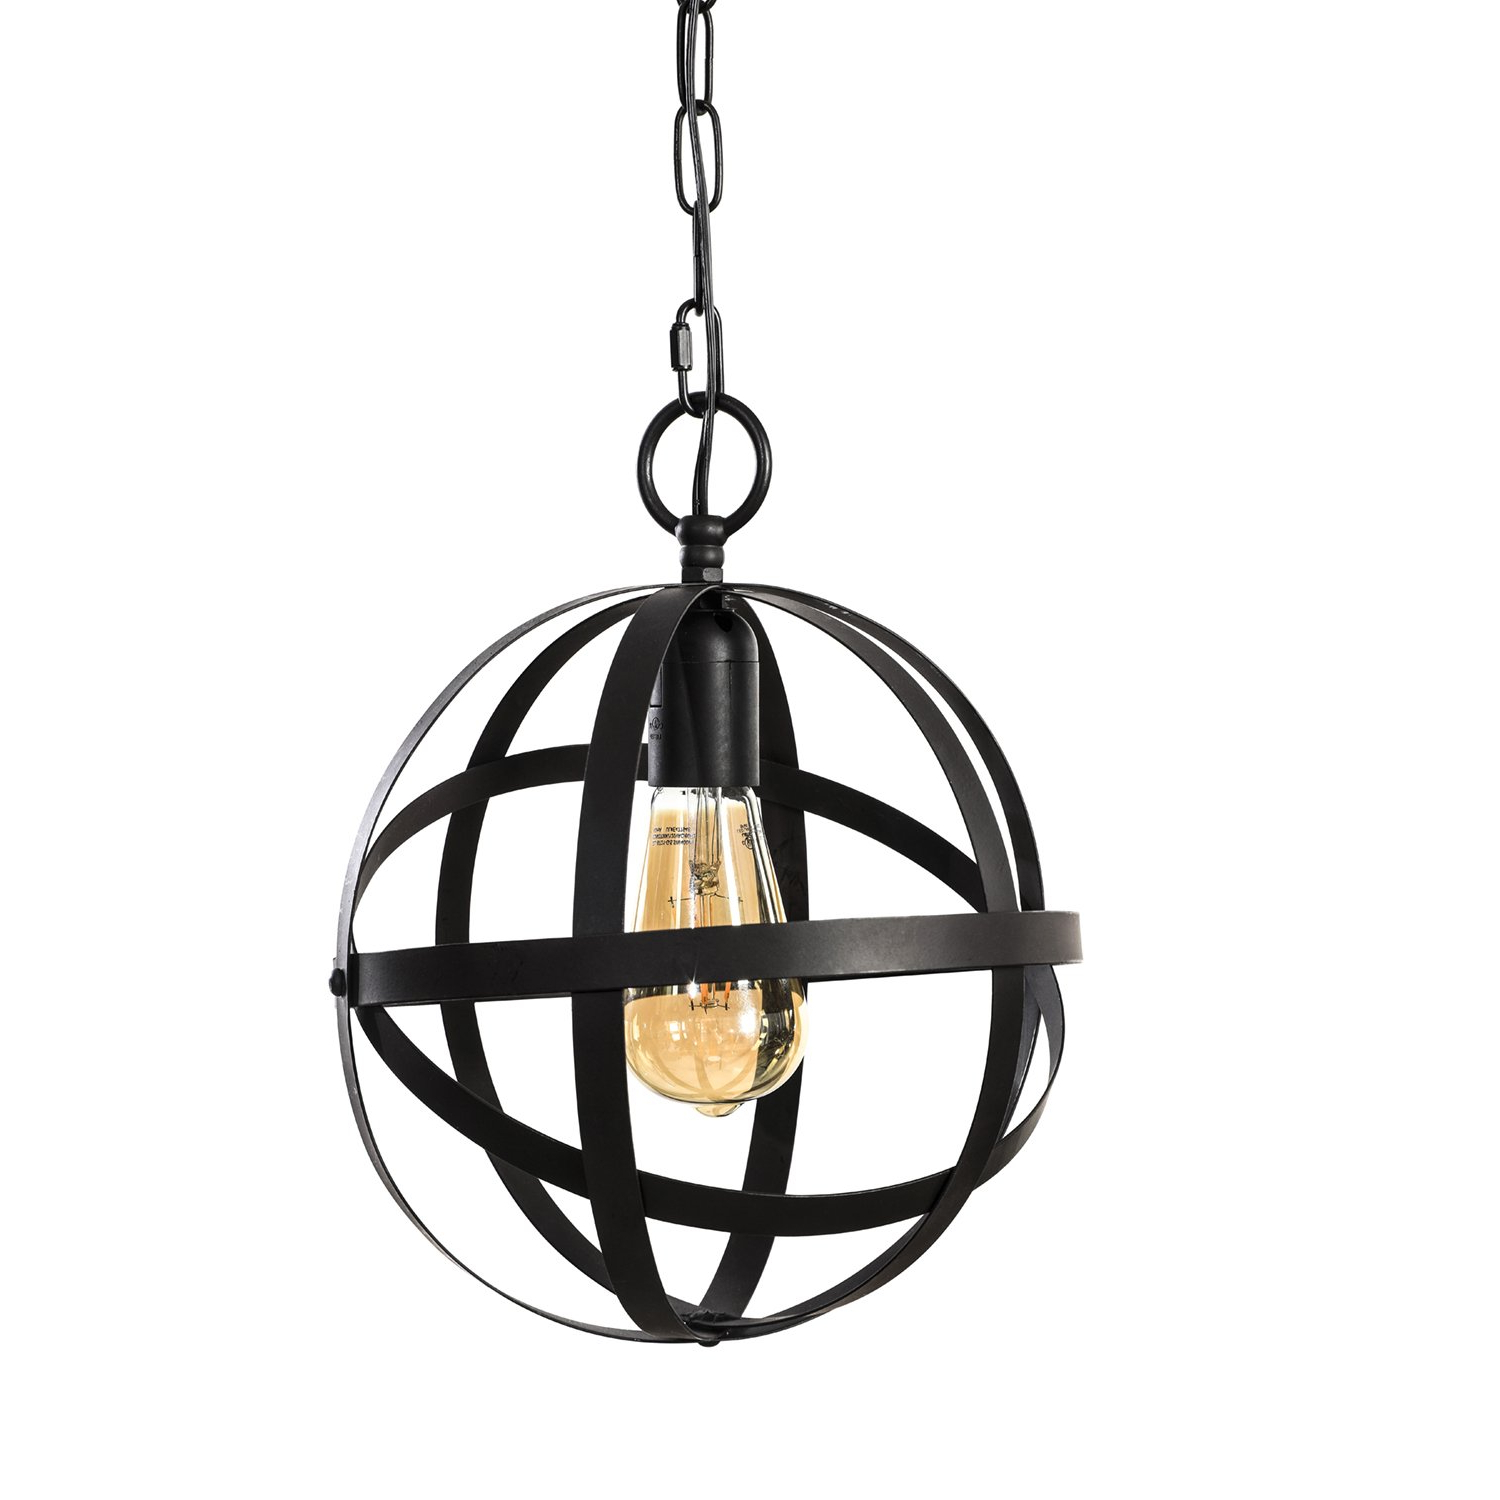 Most Current Hendry 4 Light Globe Chandeliers Intended For Lit Path Pendant Lighting Fixture For Kitchen And Dining Room, Hanging  Lighting Fixture, E26 Medium Base, Metal Construction With Oil Rubbed  Bronze (View 19 of 25)